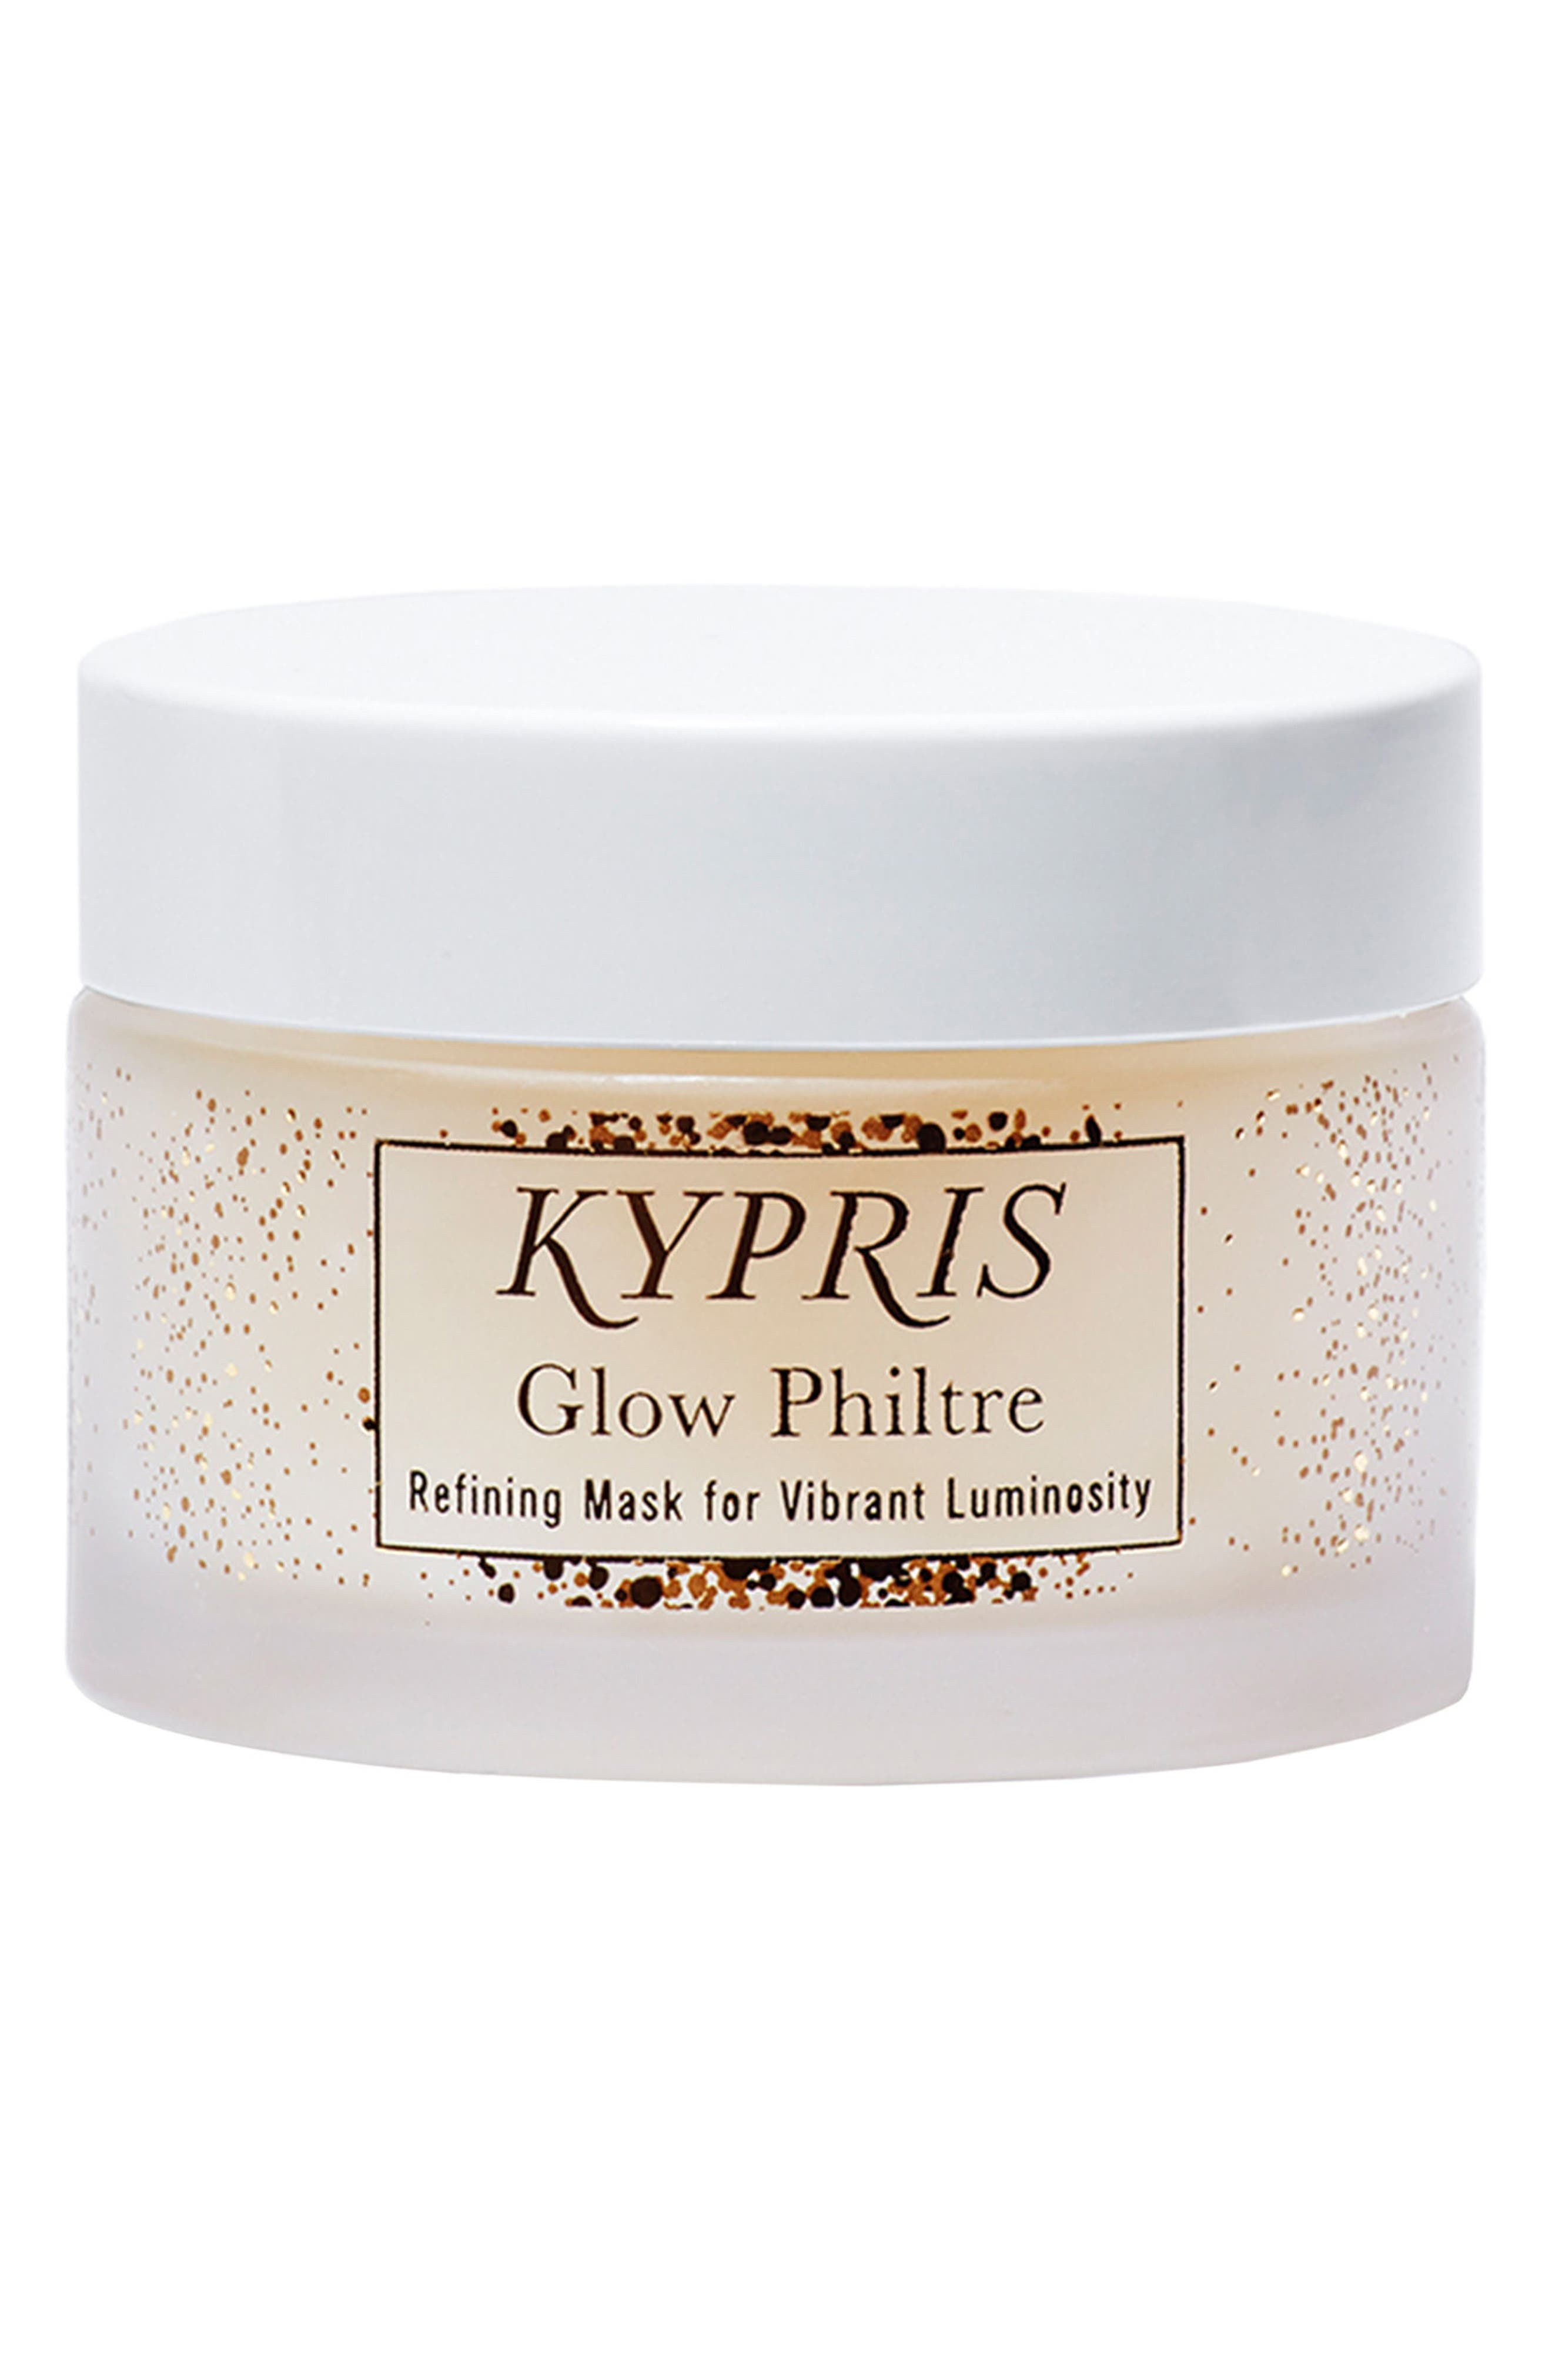 KYPRIS BEAUTY Glow Philtre Refining Mask for Vibrant